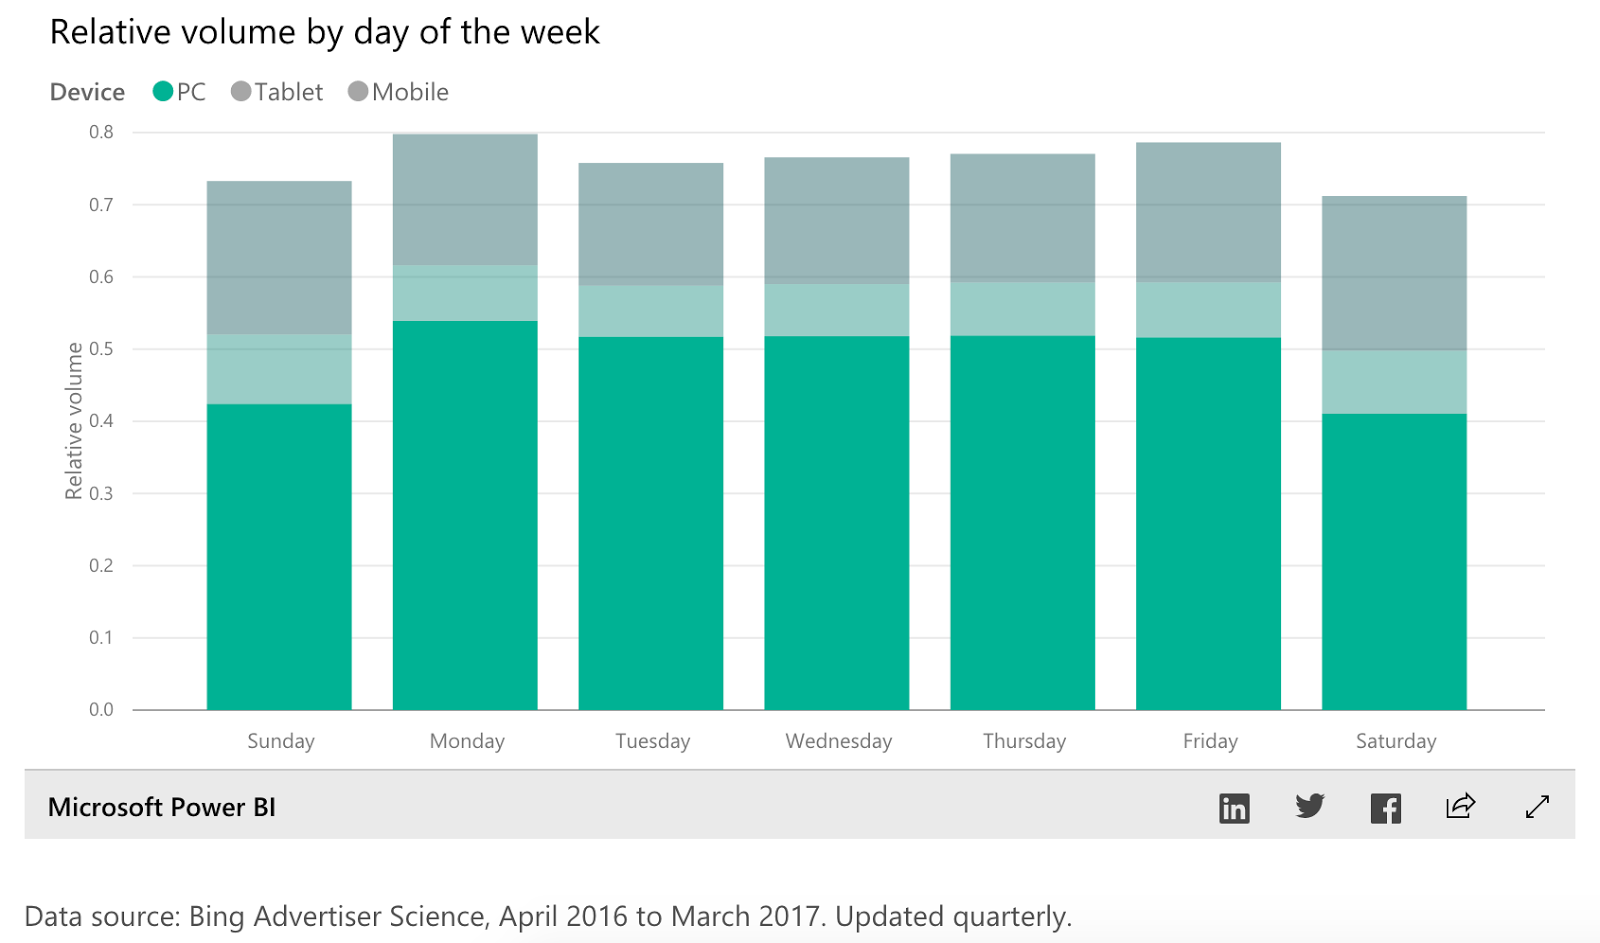 bing ads relative volume by day of the week